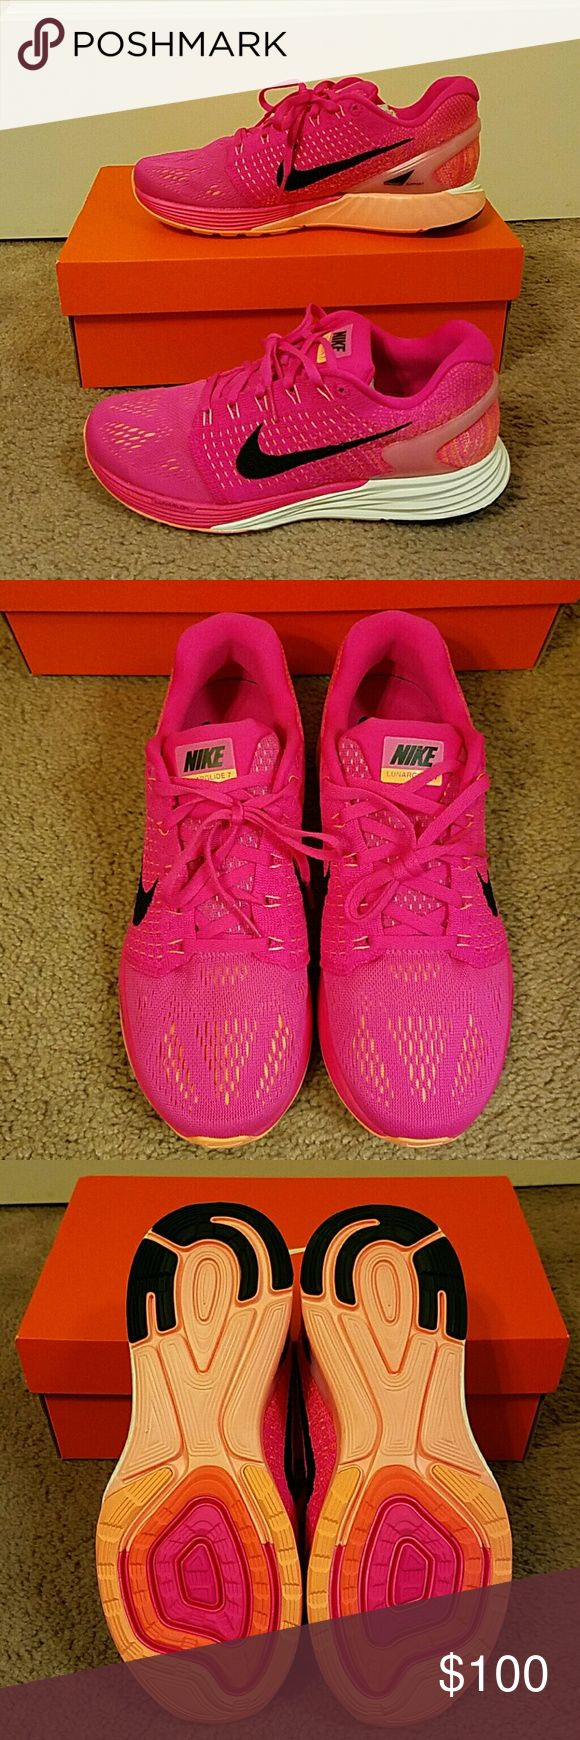 Women's Nike Lunarglide 7 sneakers Women's Nike Lunarglide 7 sneakers in pink foil. Brand new amd never worn! Includes original box! Price is firm ?? Nike Shoes Sneakers